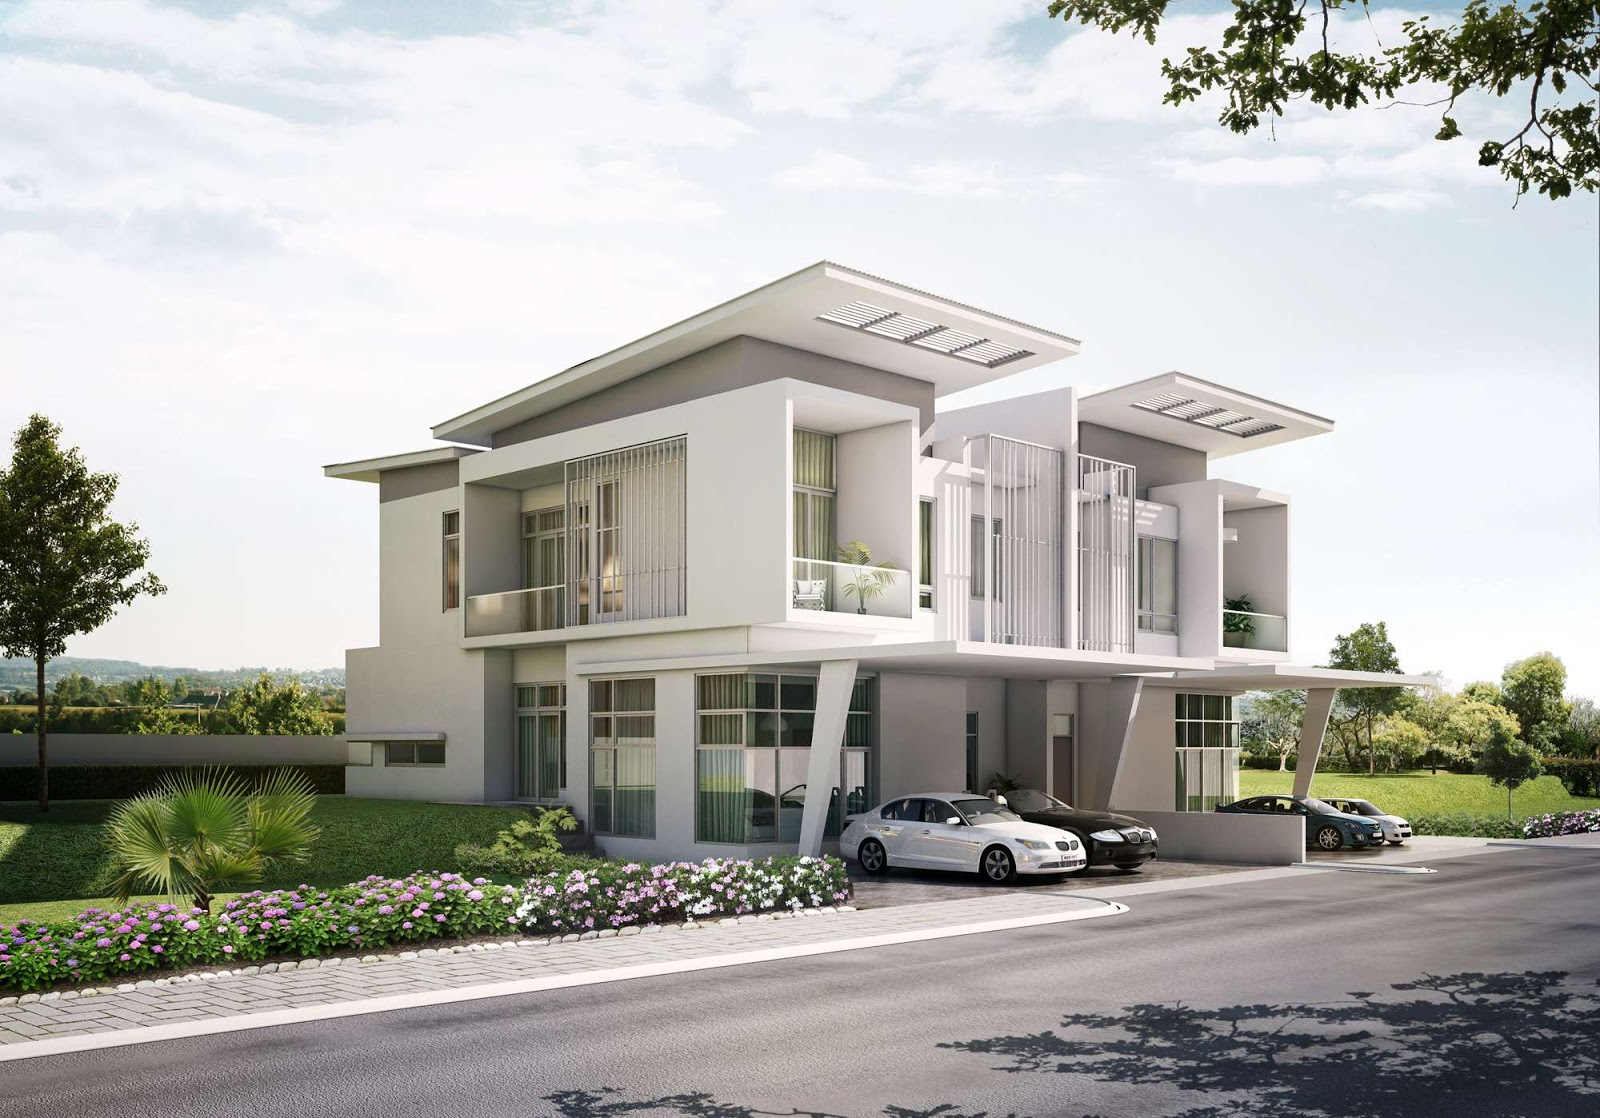 House Design Exterior New Home Designs Latest July 2013